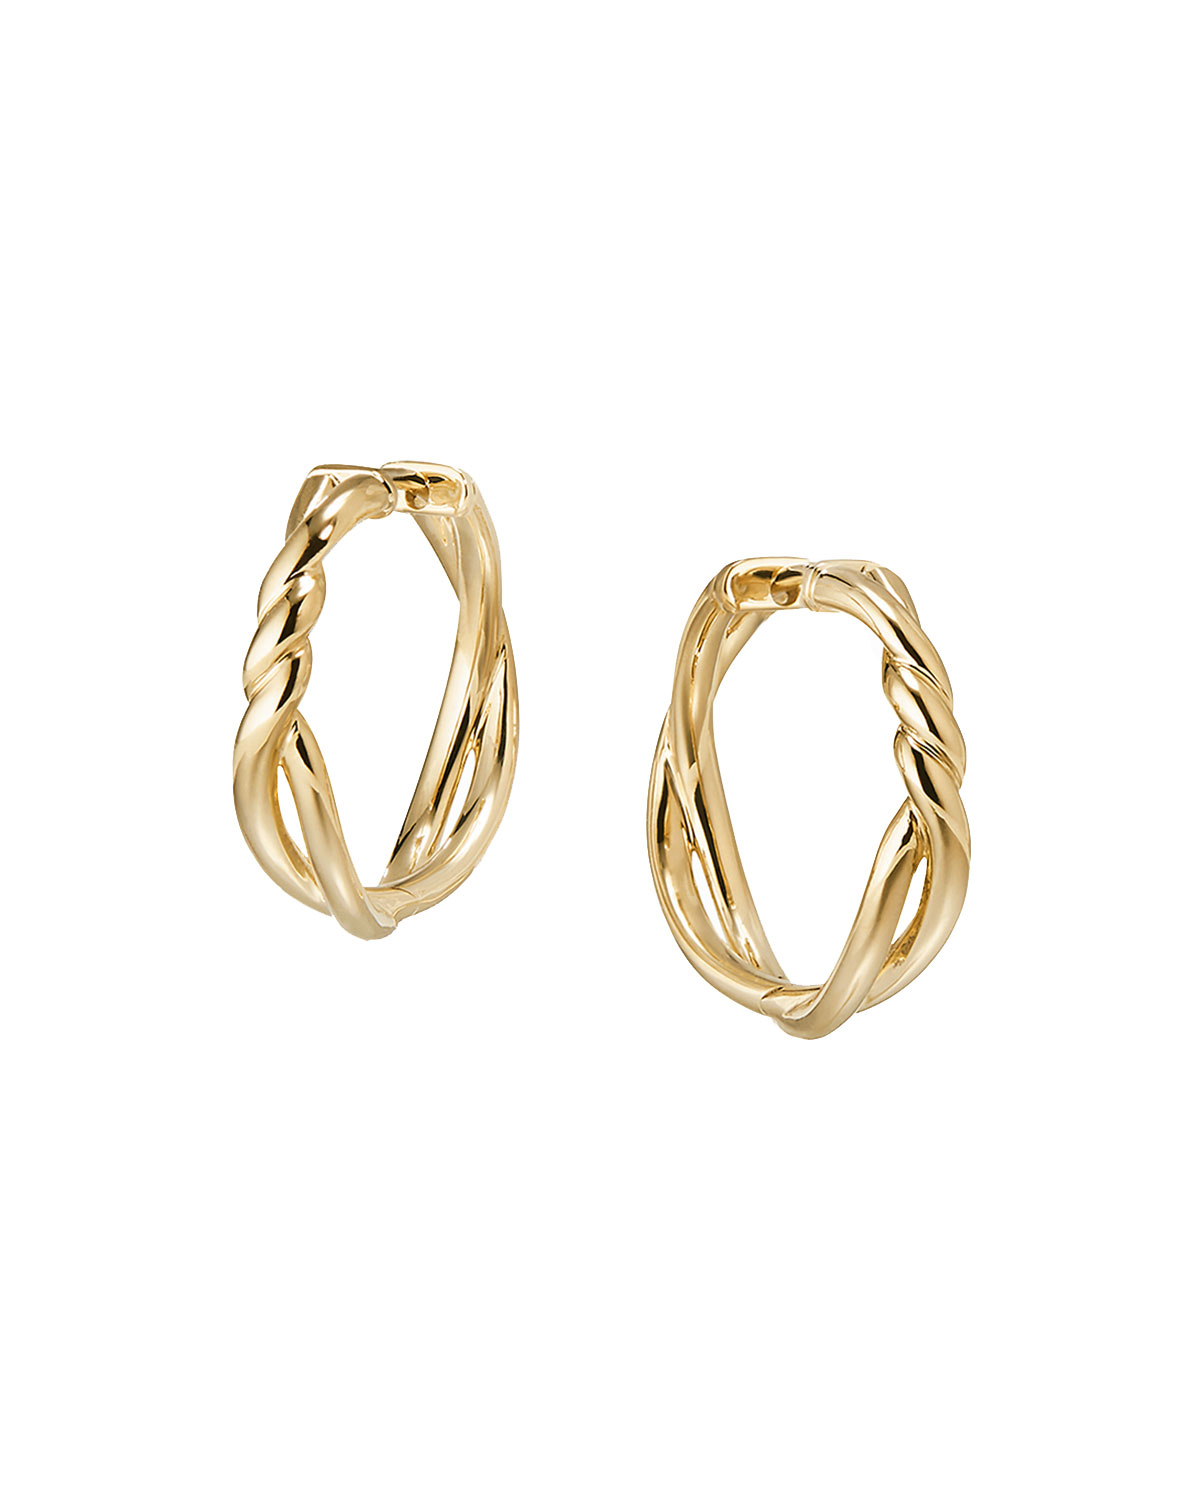 deda6309e60e6 David Yurman 21mm Continuance 18K Gold Hoop Earrings